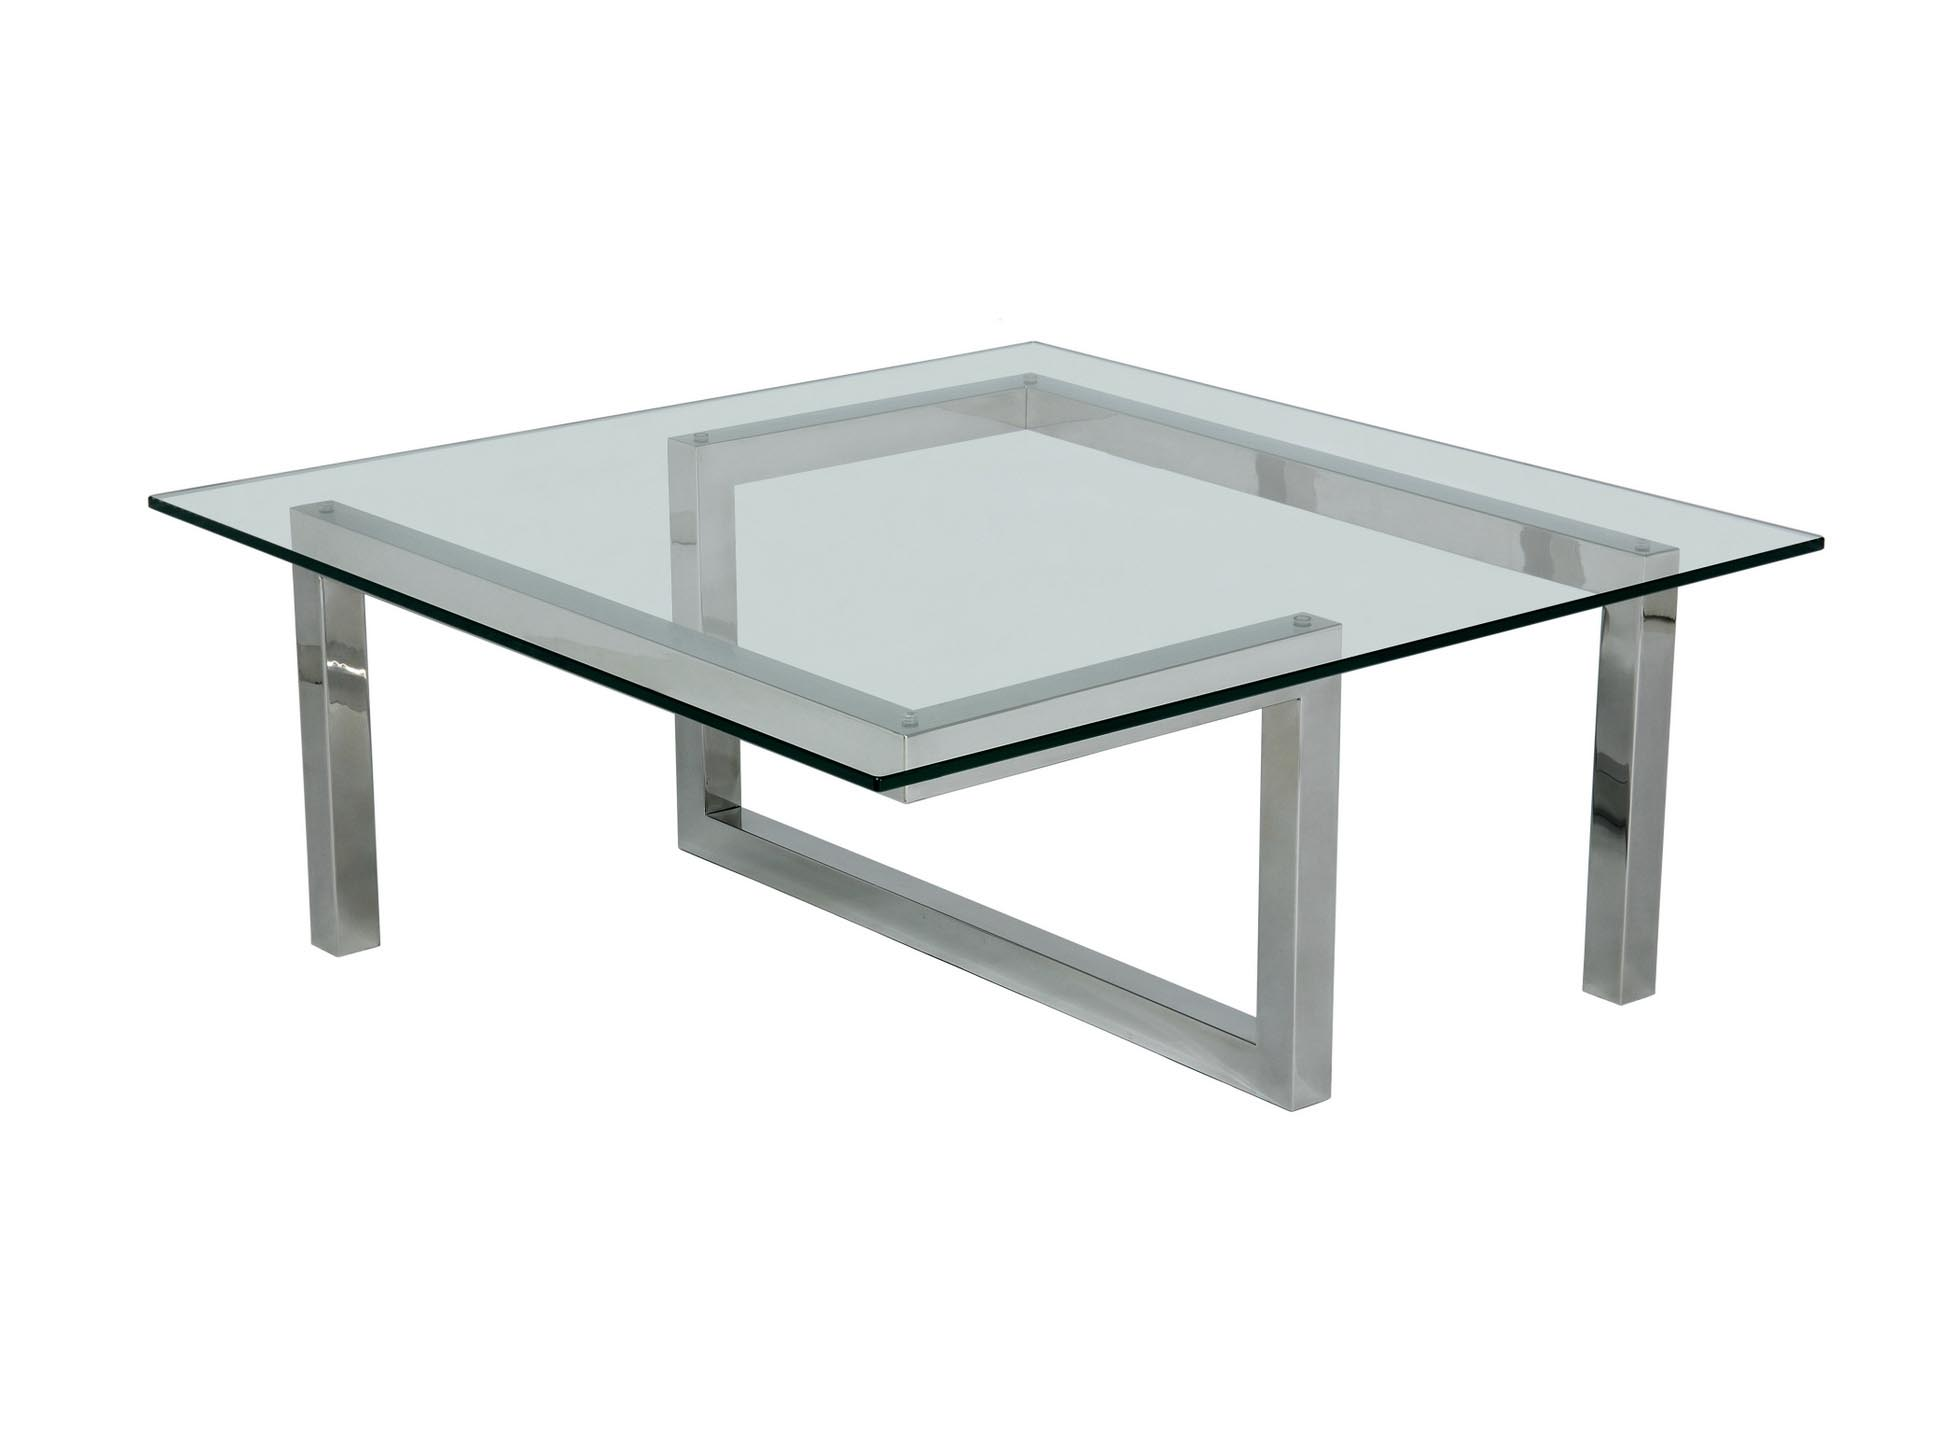 Stainless steel and glass coffee tables coffee table design ideas Steel and glass coffee table